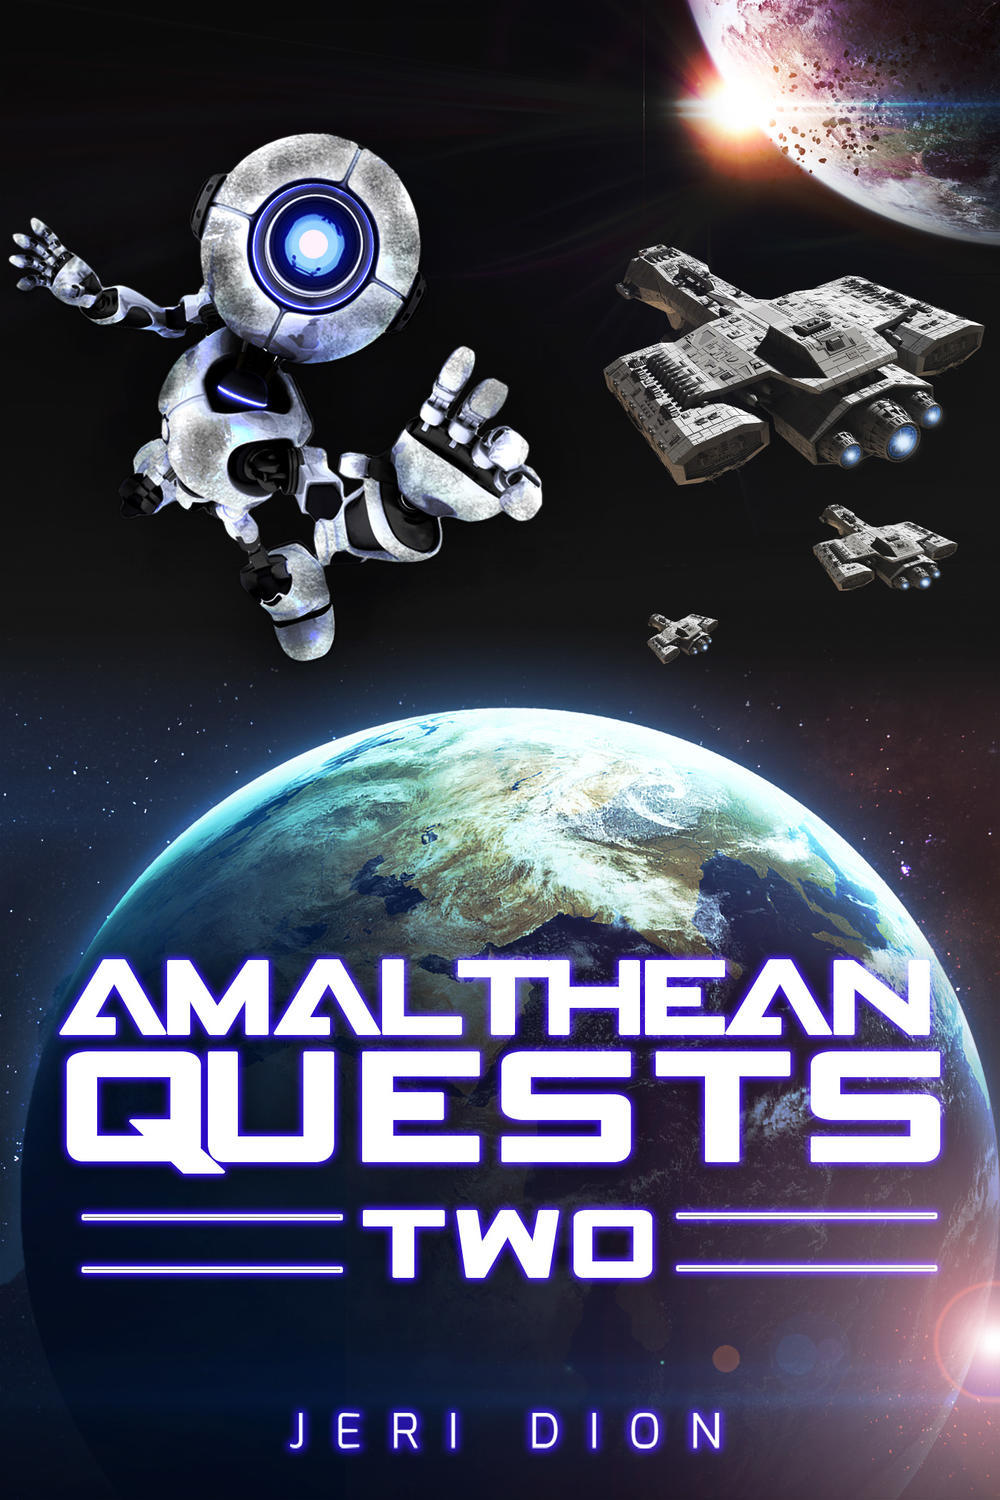 Dion, Jeri - Amalthean Quests Two, ebook